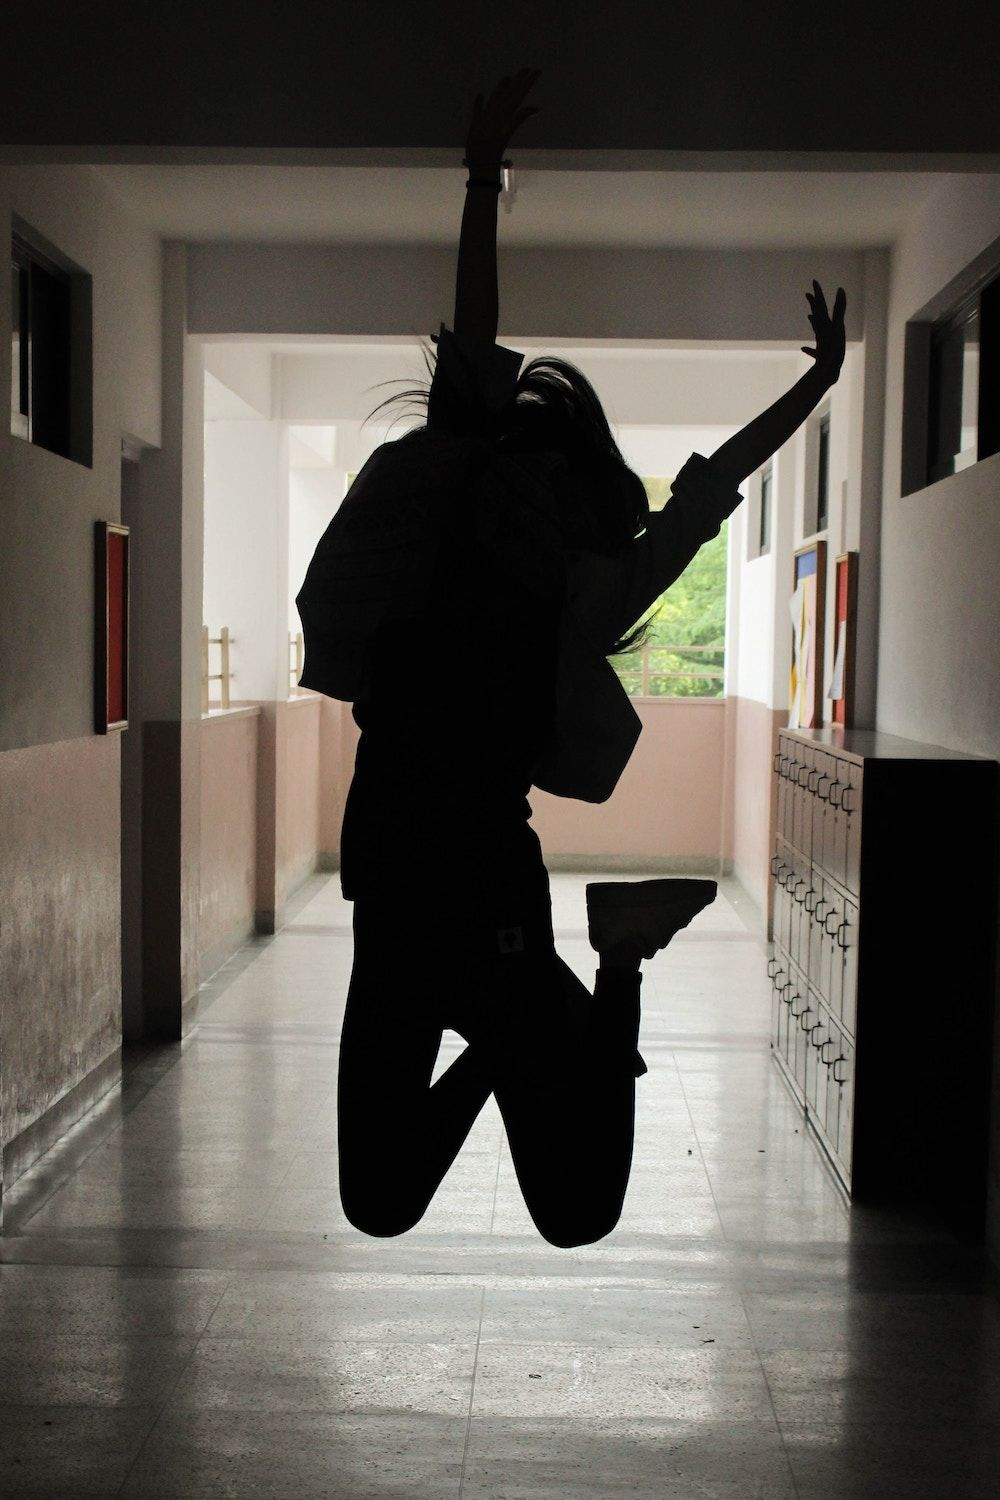 girl at school jumping